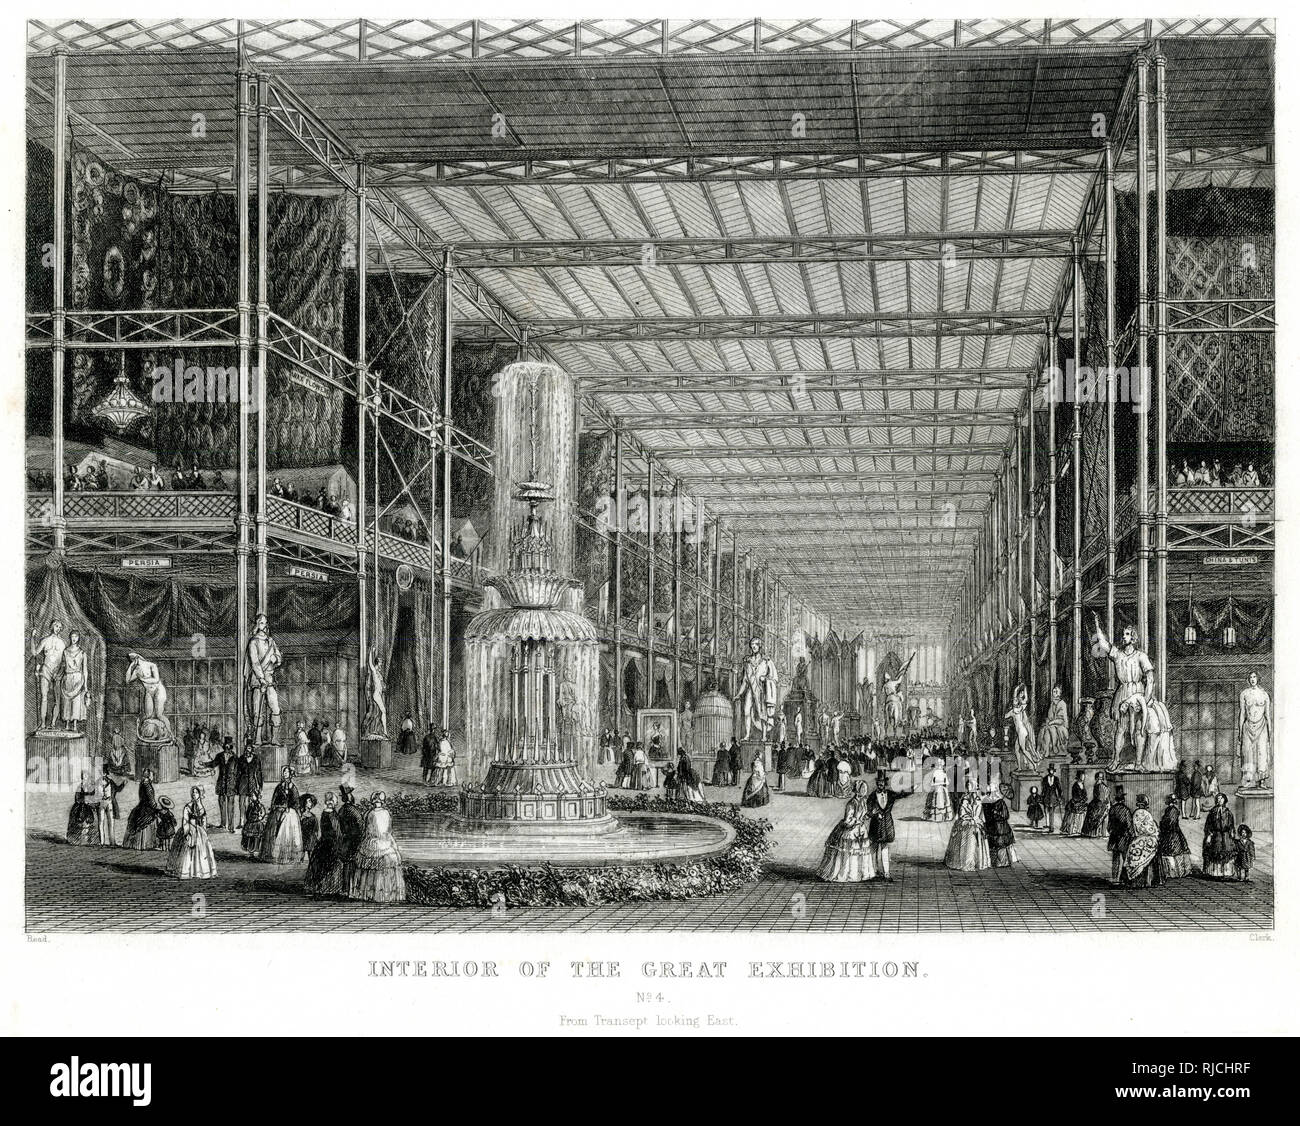 Interior of the Great Exhibition at the Crystal Palace at Hyde Park, from the transept looking east. - Stock Image